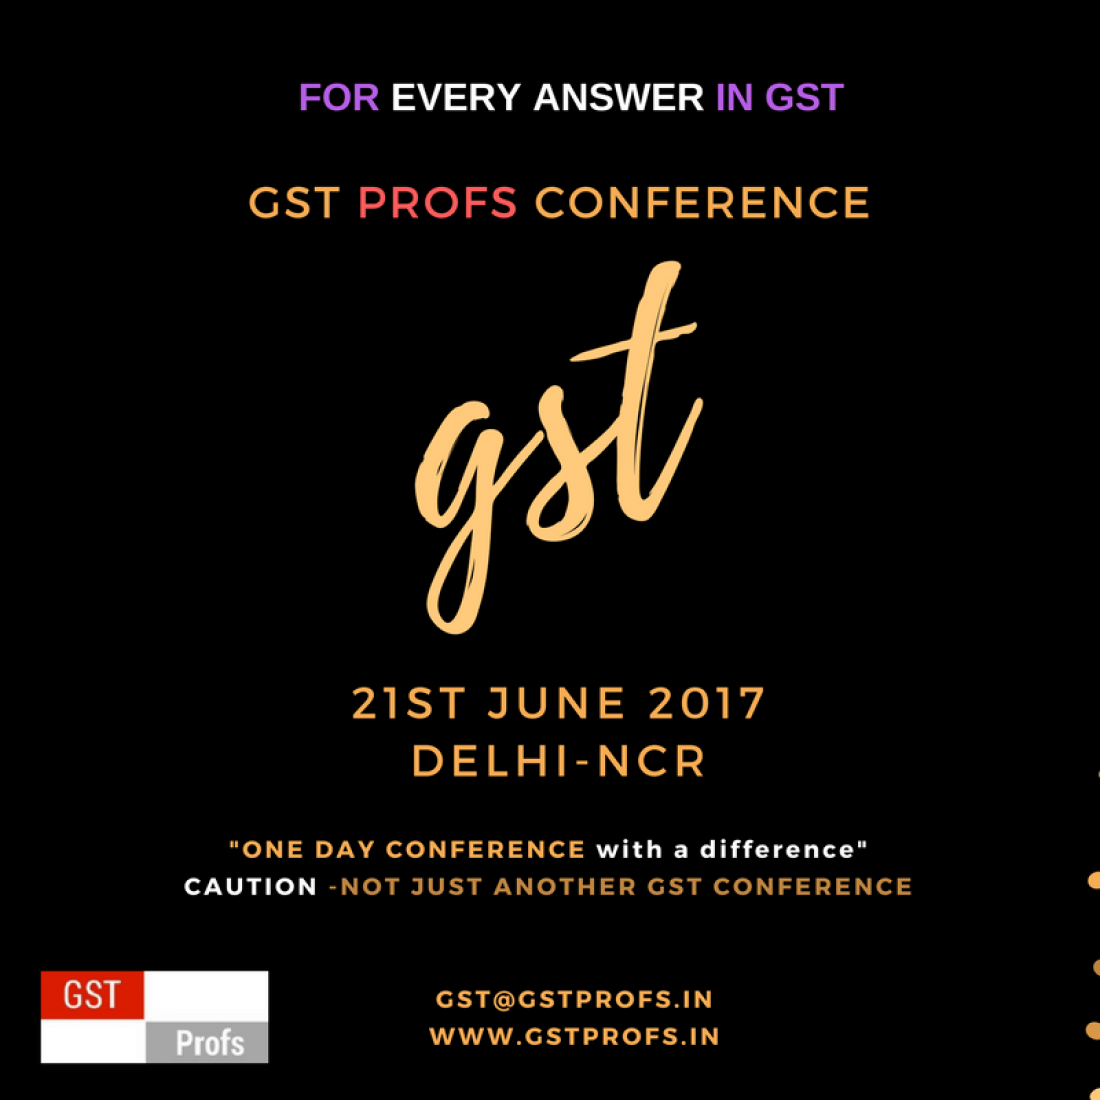 GST PROFS CONFERENCE